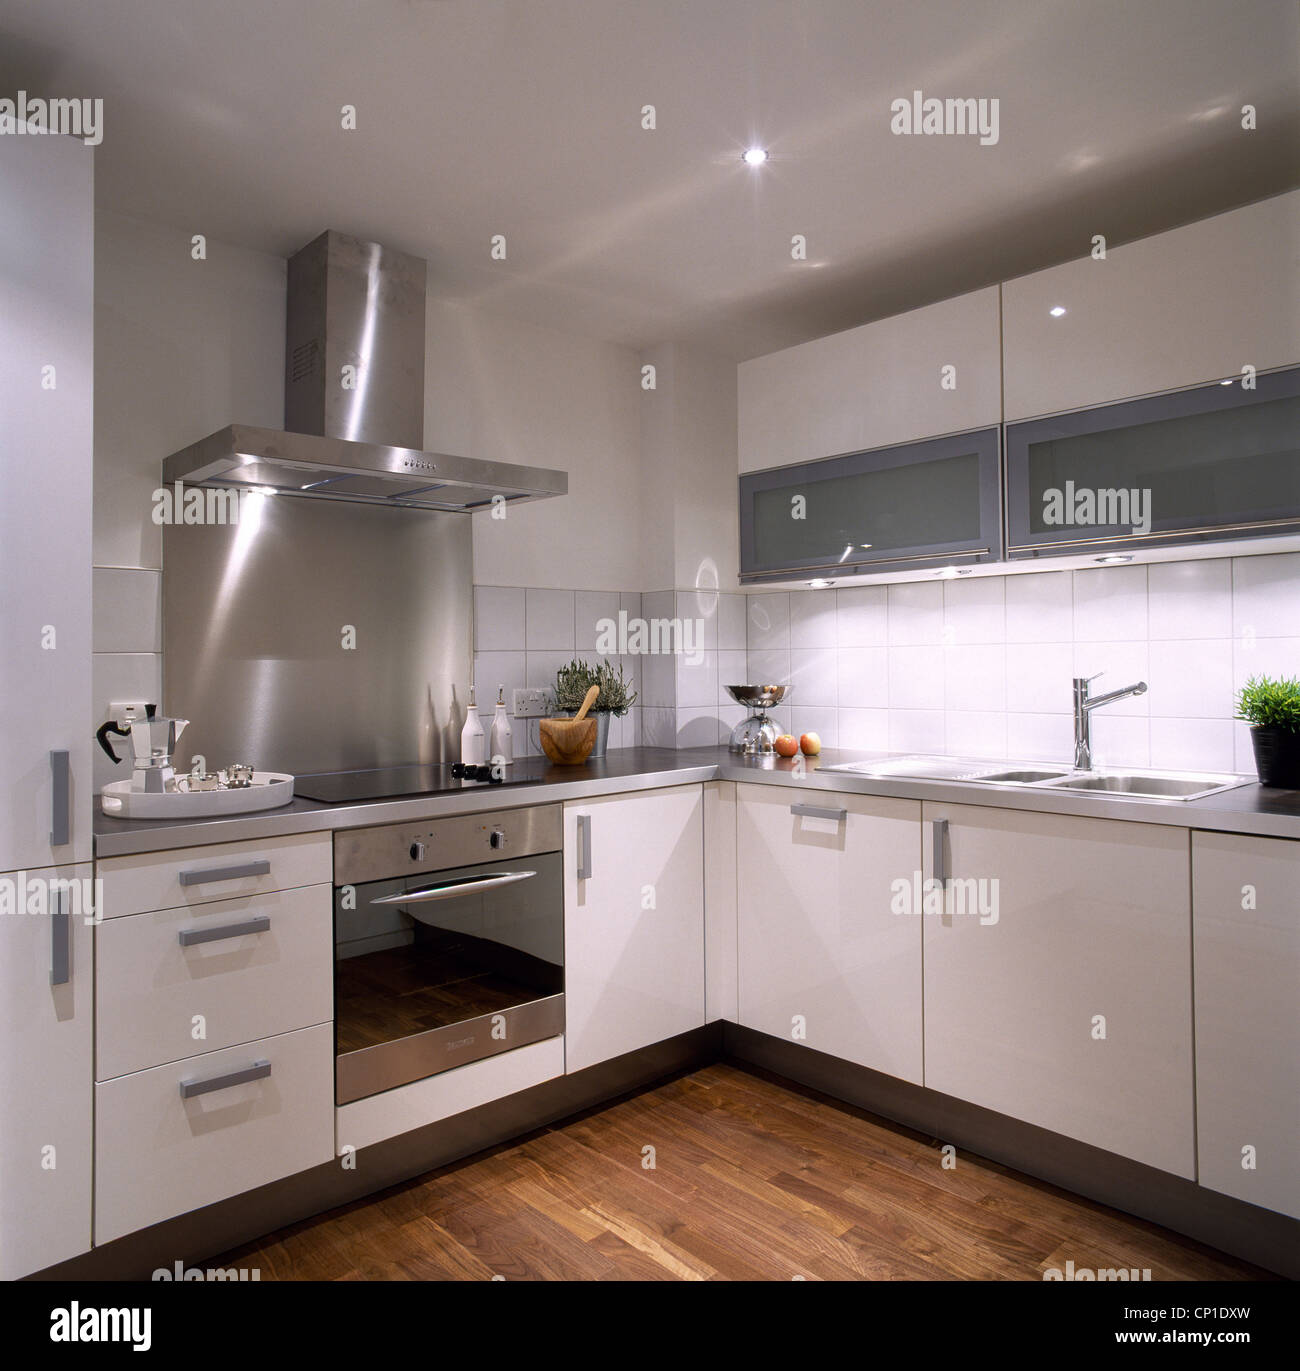 extractor fan kitchen swags a modern white with units stainless steel integral oven and wooden floor